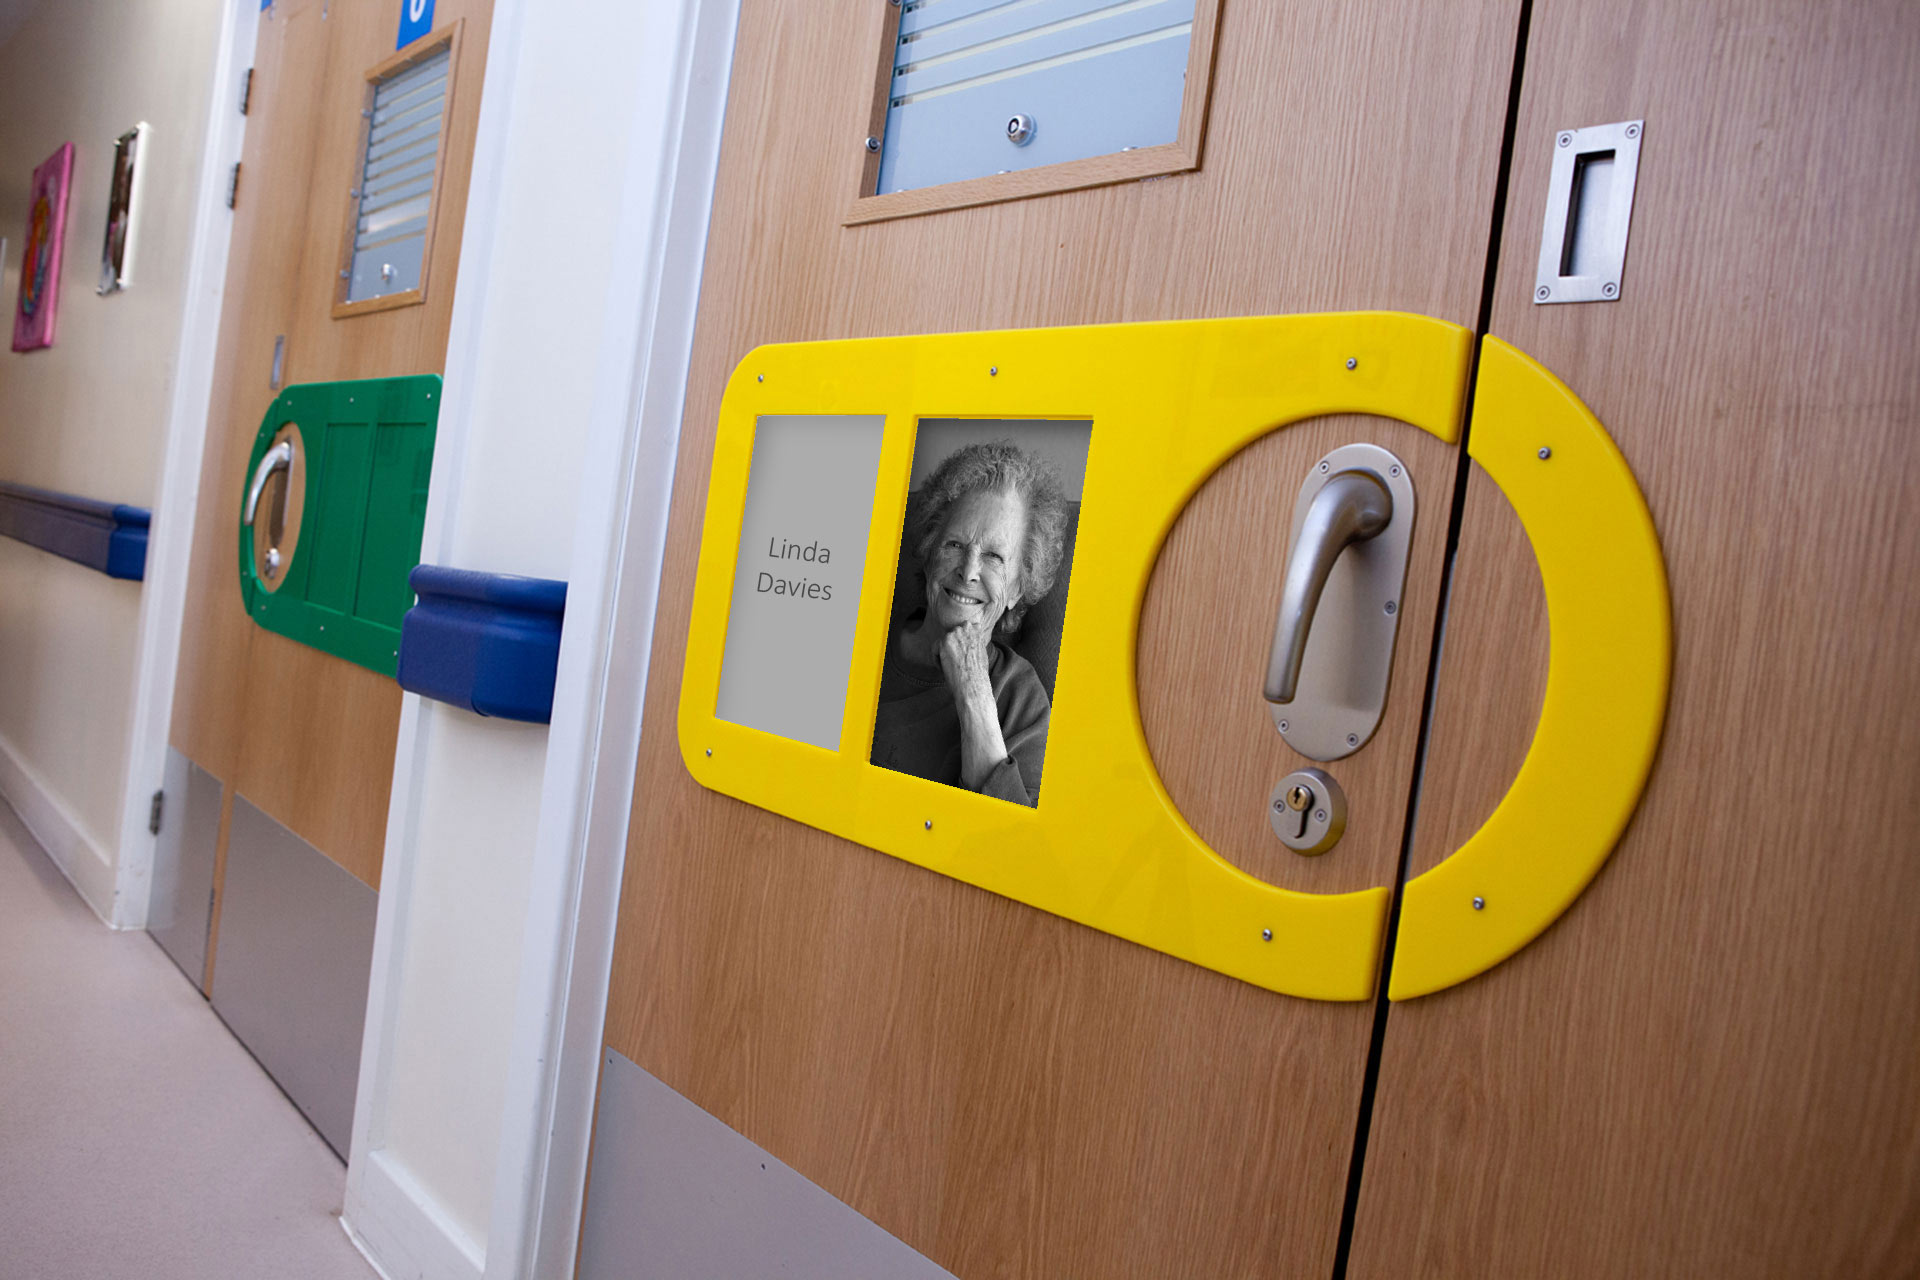 Personalised door signs to act as visual aids for patients with dementia